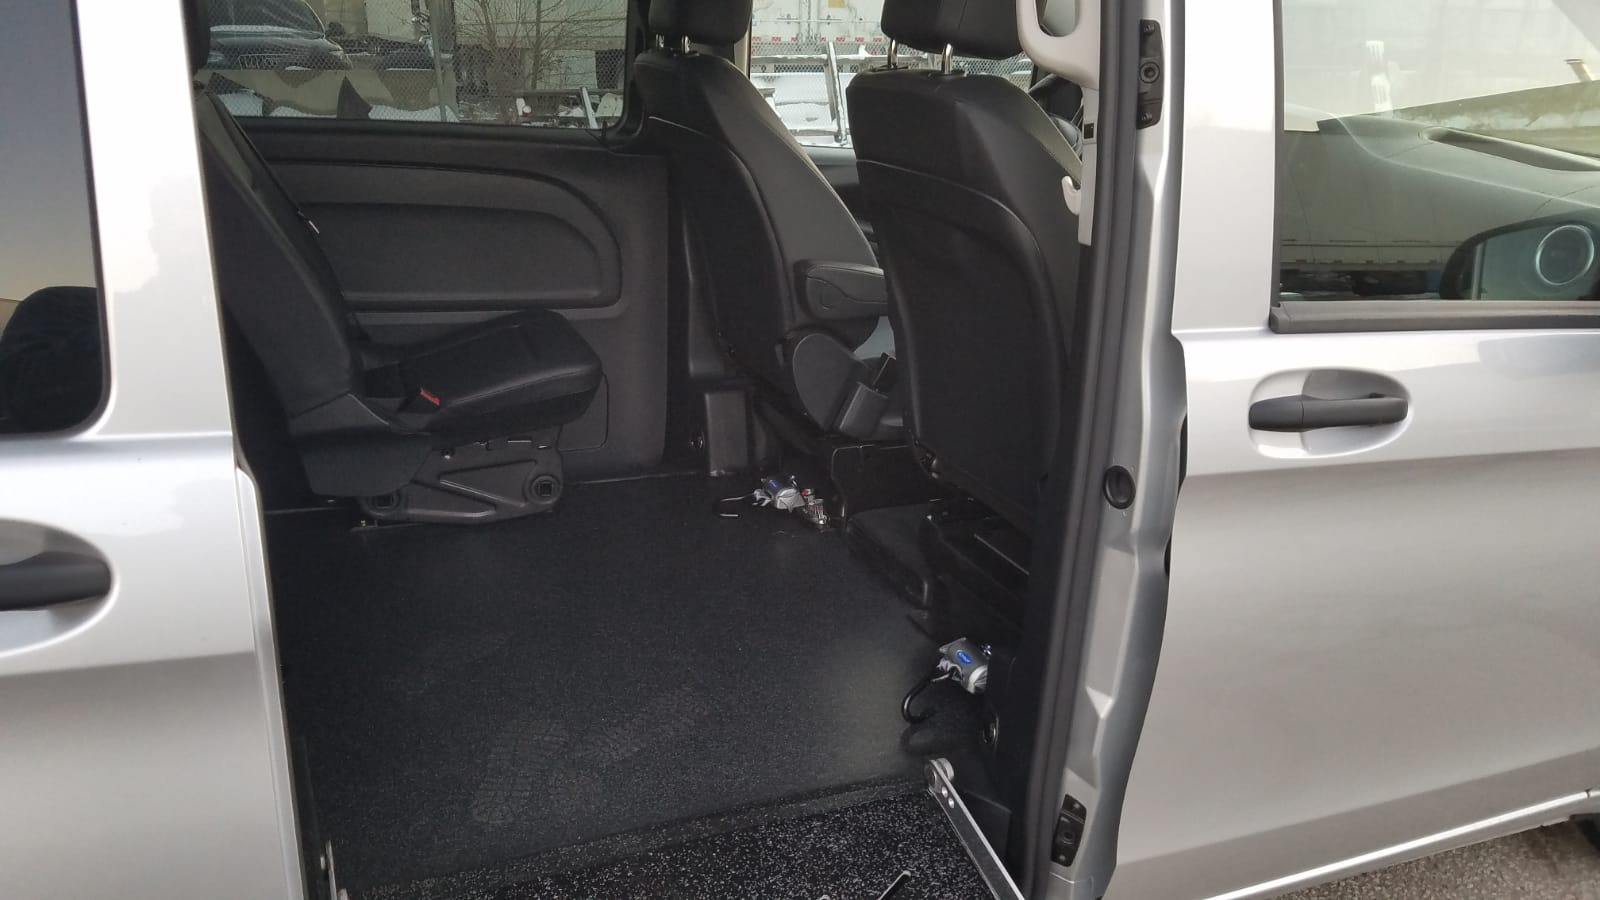 Interior view of seats from ramp angle of 2020 Mercedes Metris